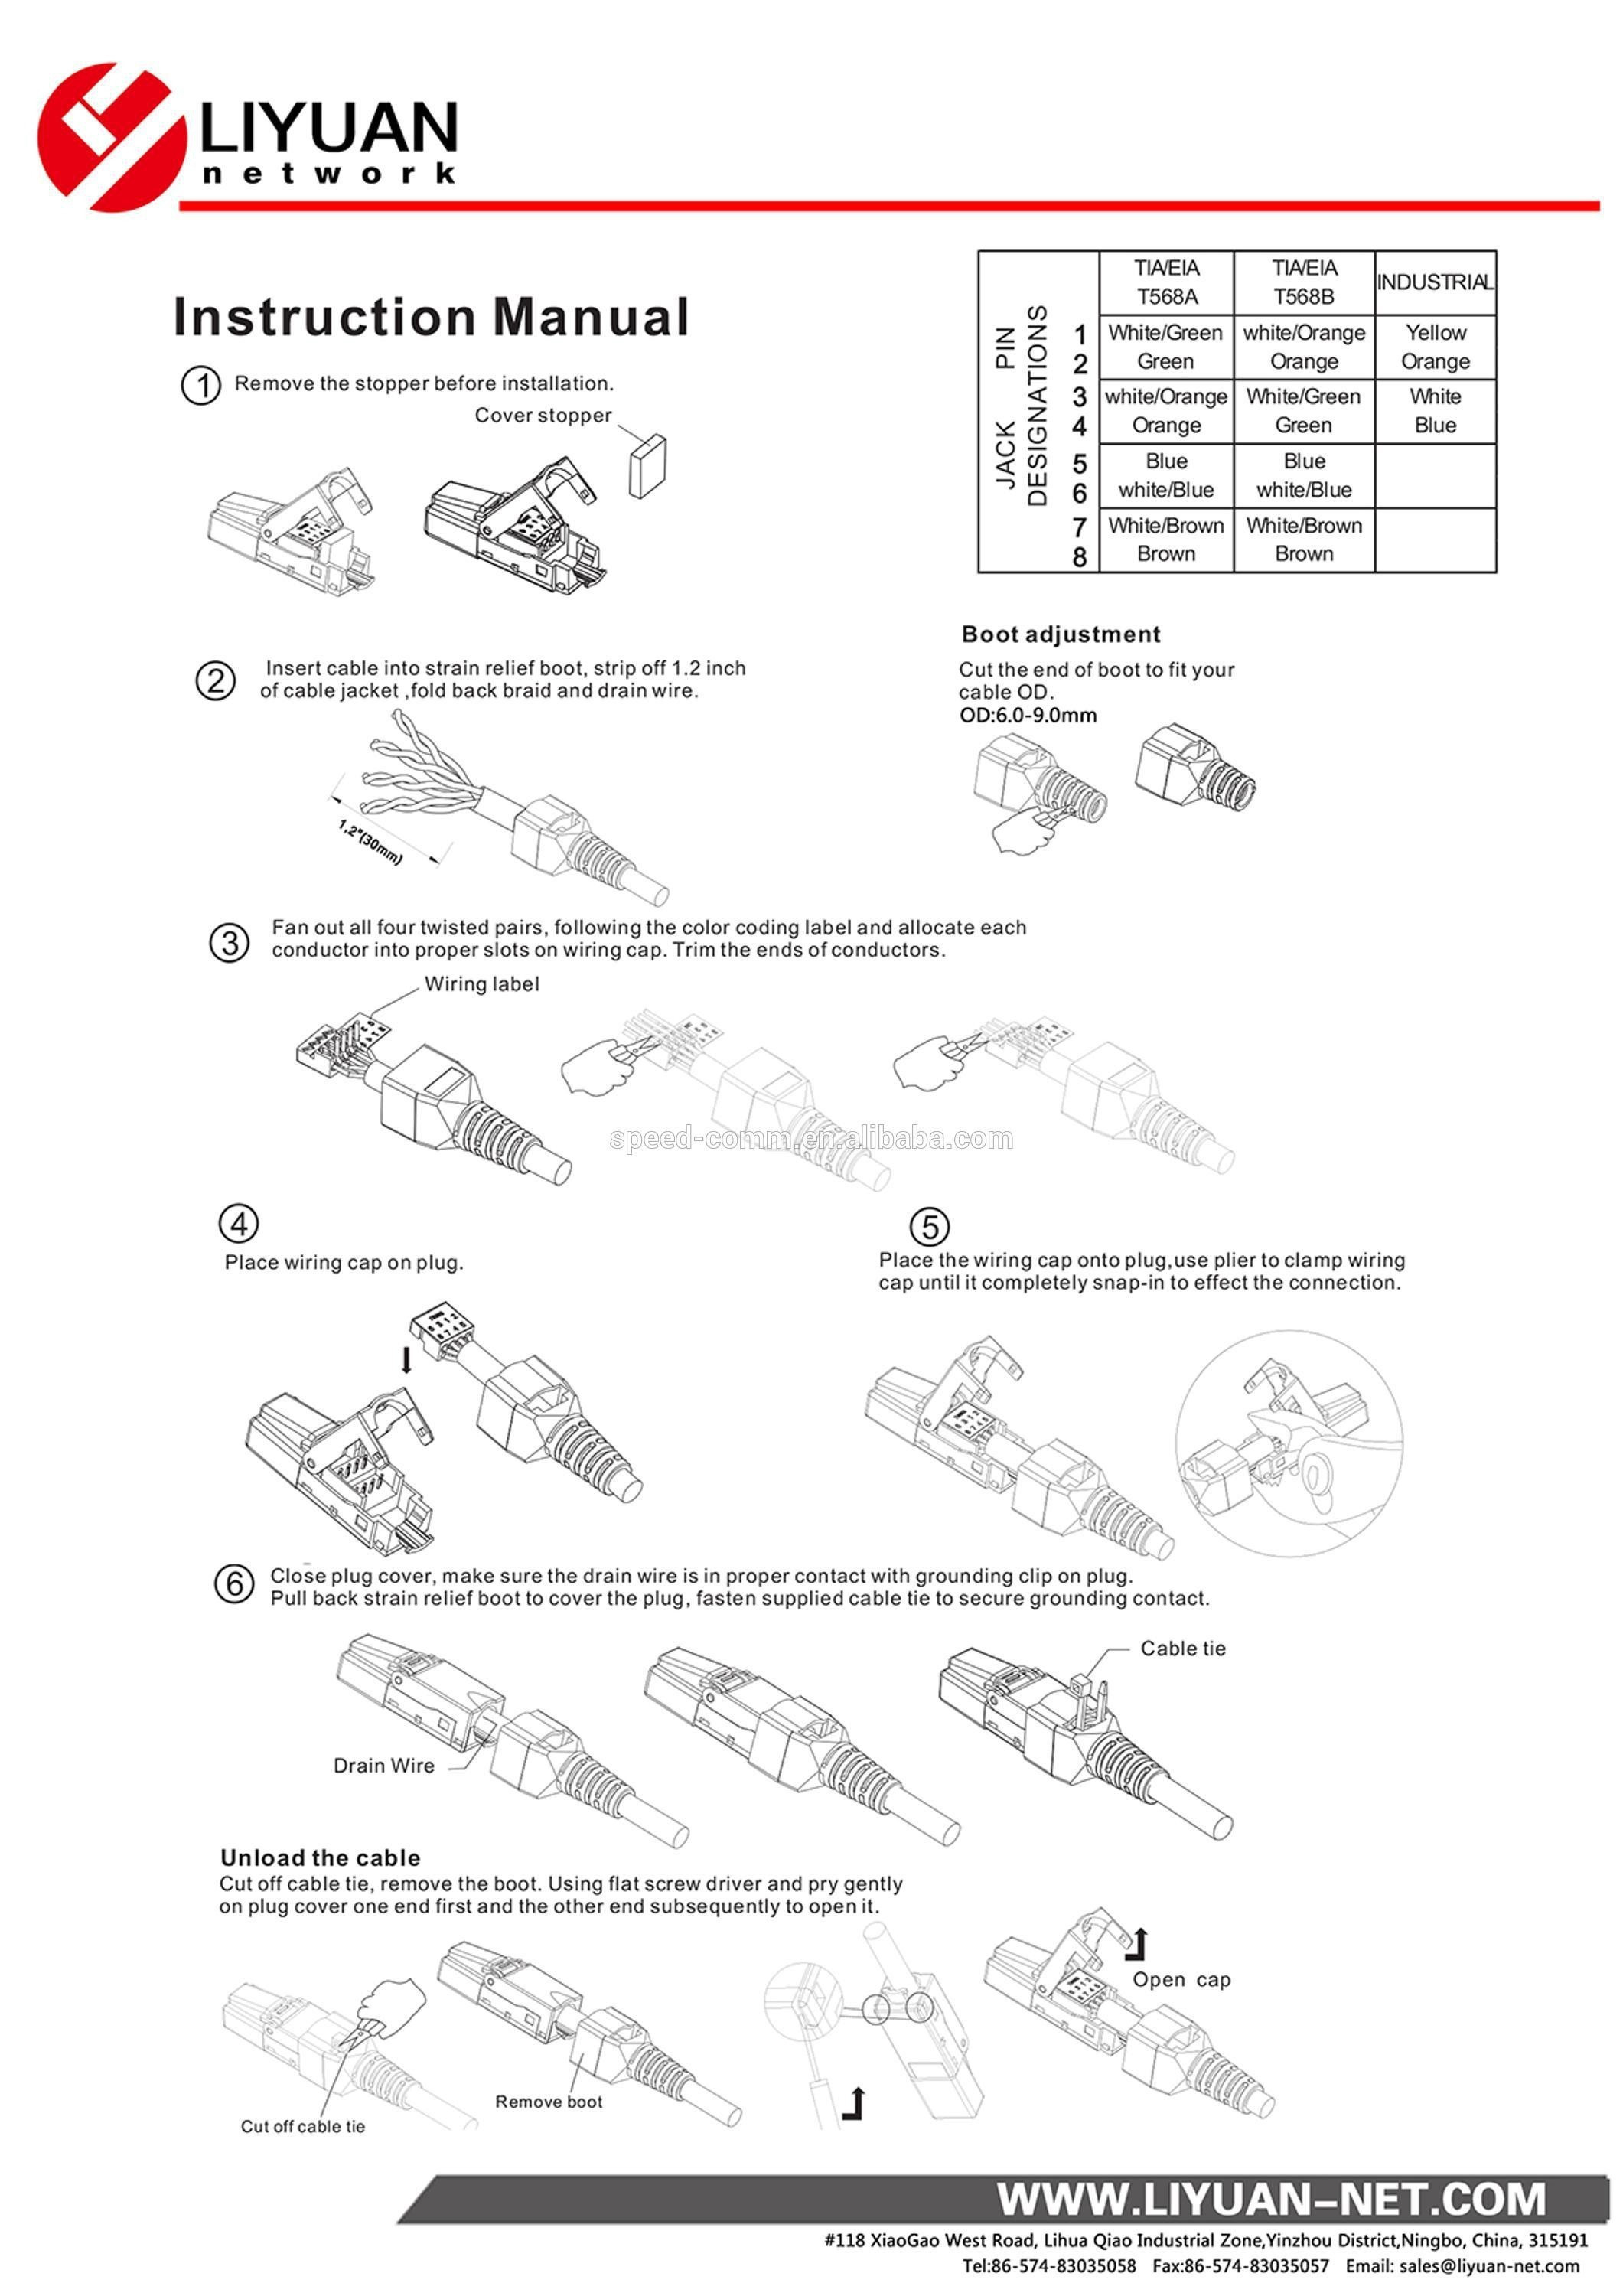 insert cable wiring diagram xb 9980  rj45 rj11 wiring diagrams free diagram  rj45 rj11 wiring diagrams free diagram